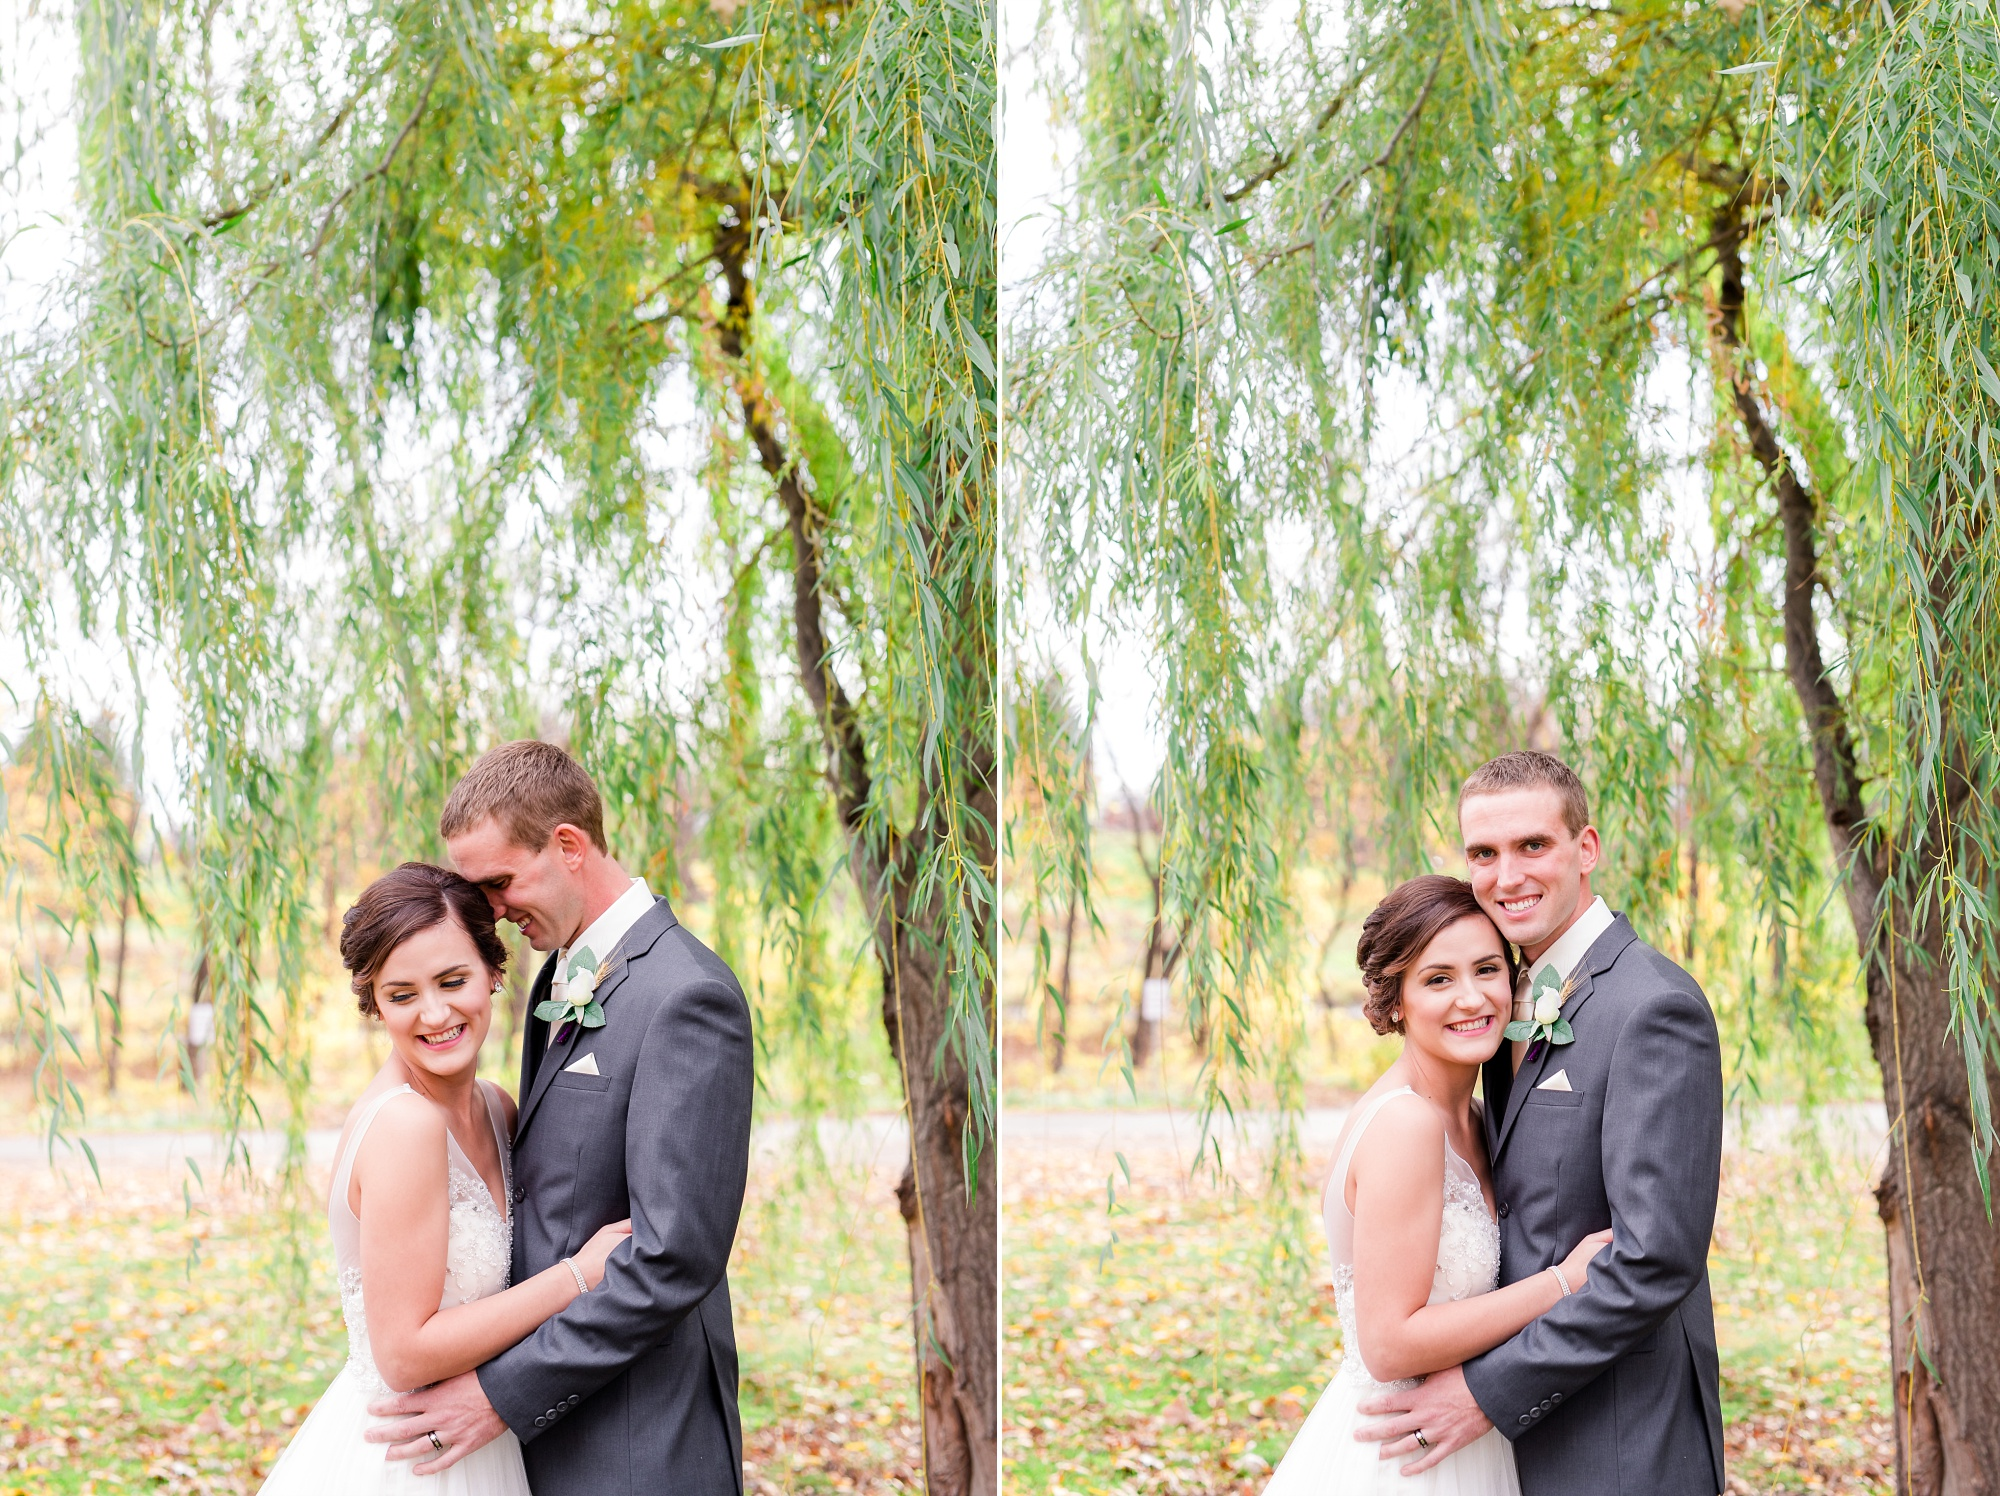 Wedding Portraits by a Willow Tree by Amber Langerud Photography